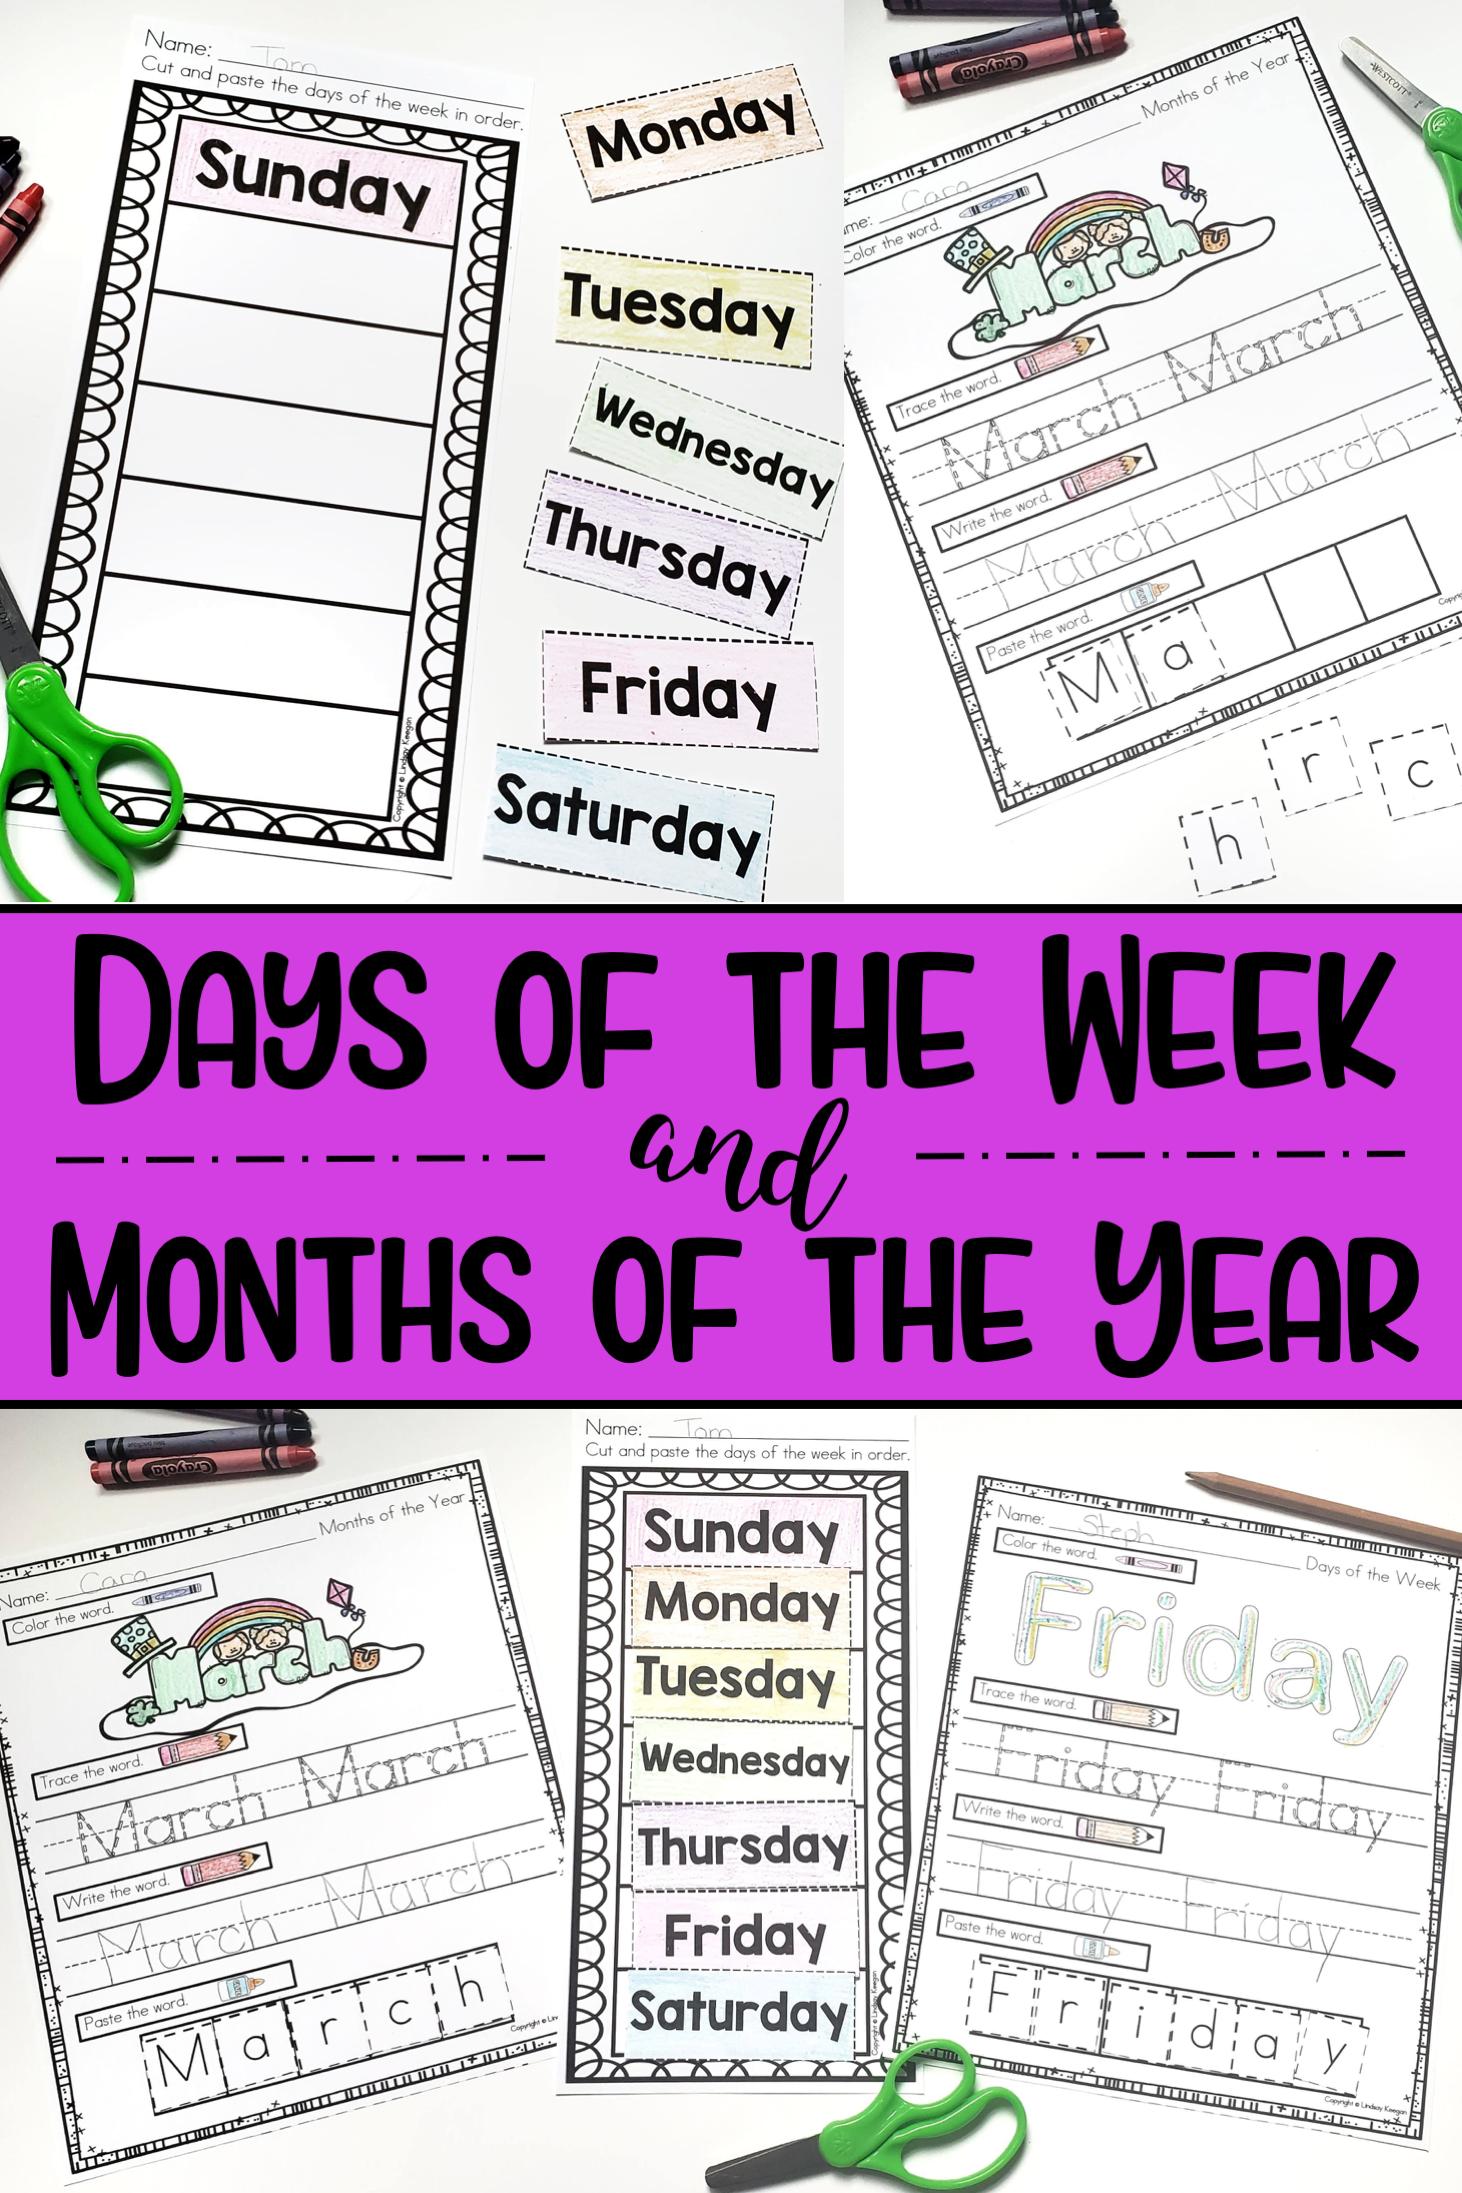 Days Of The Week And Months Of The Year Worksheets